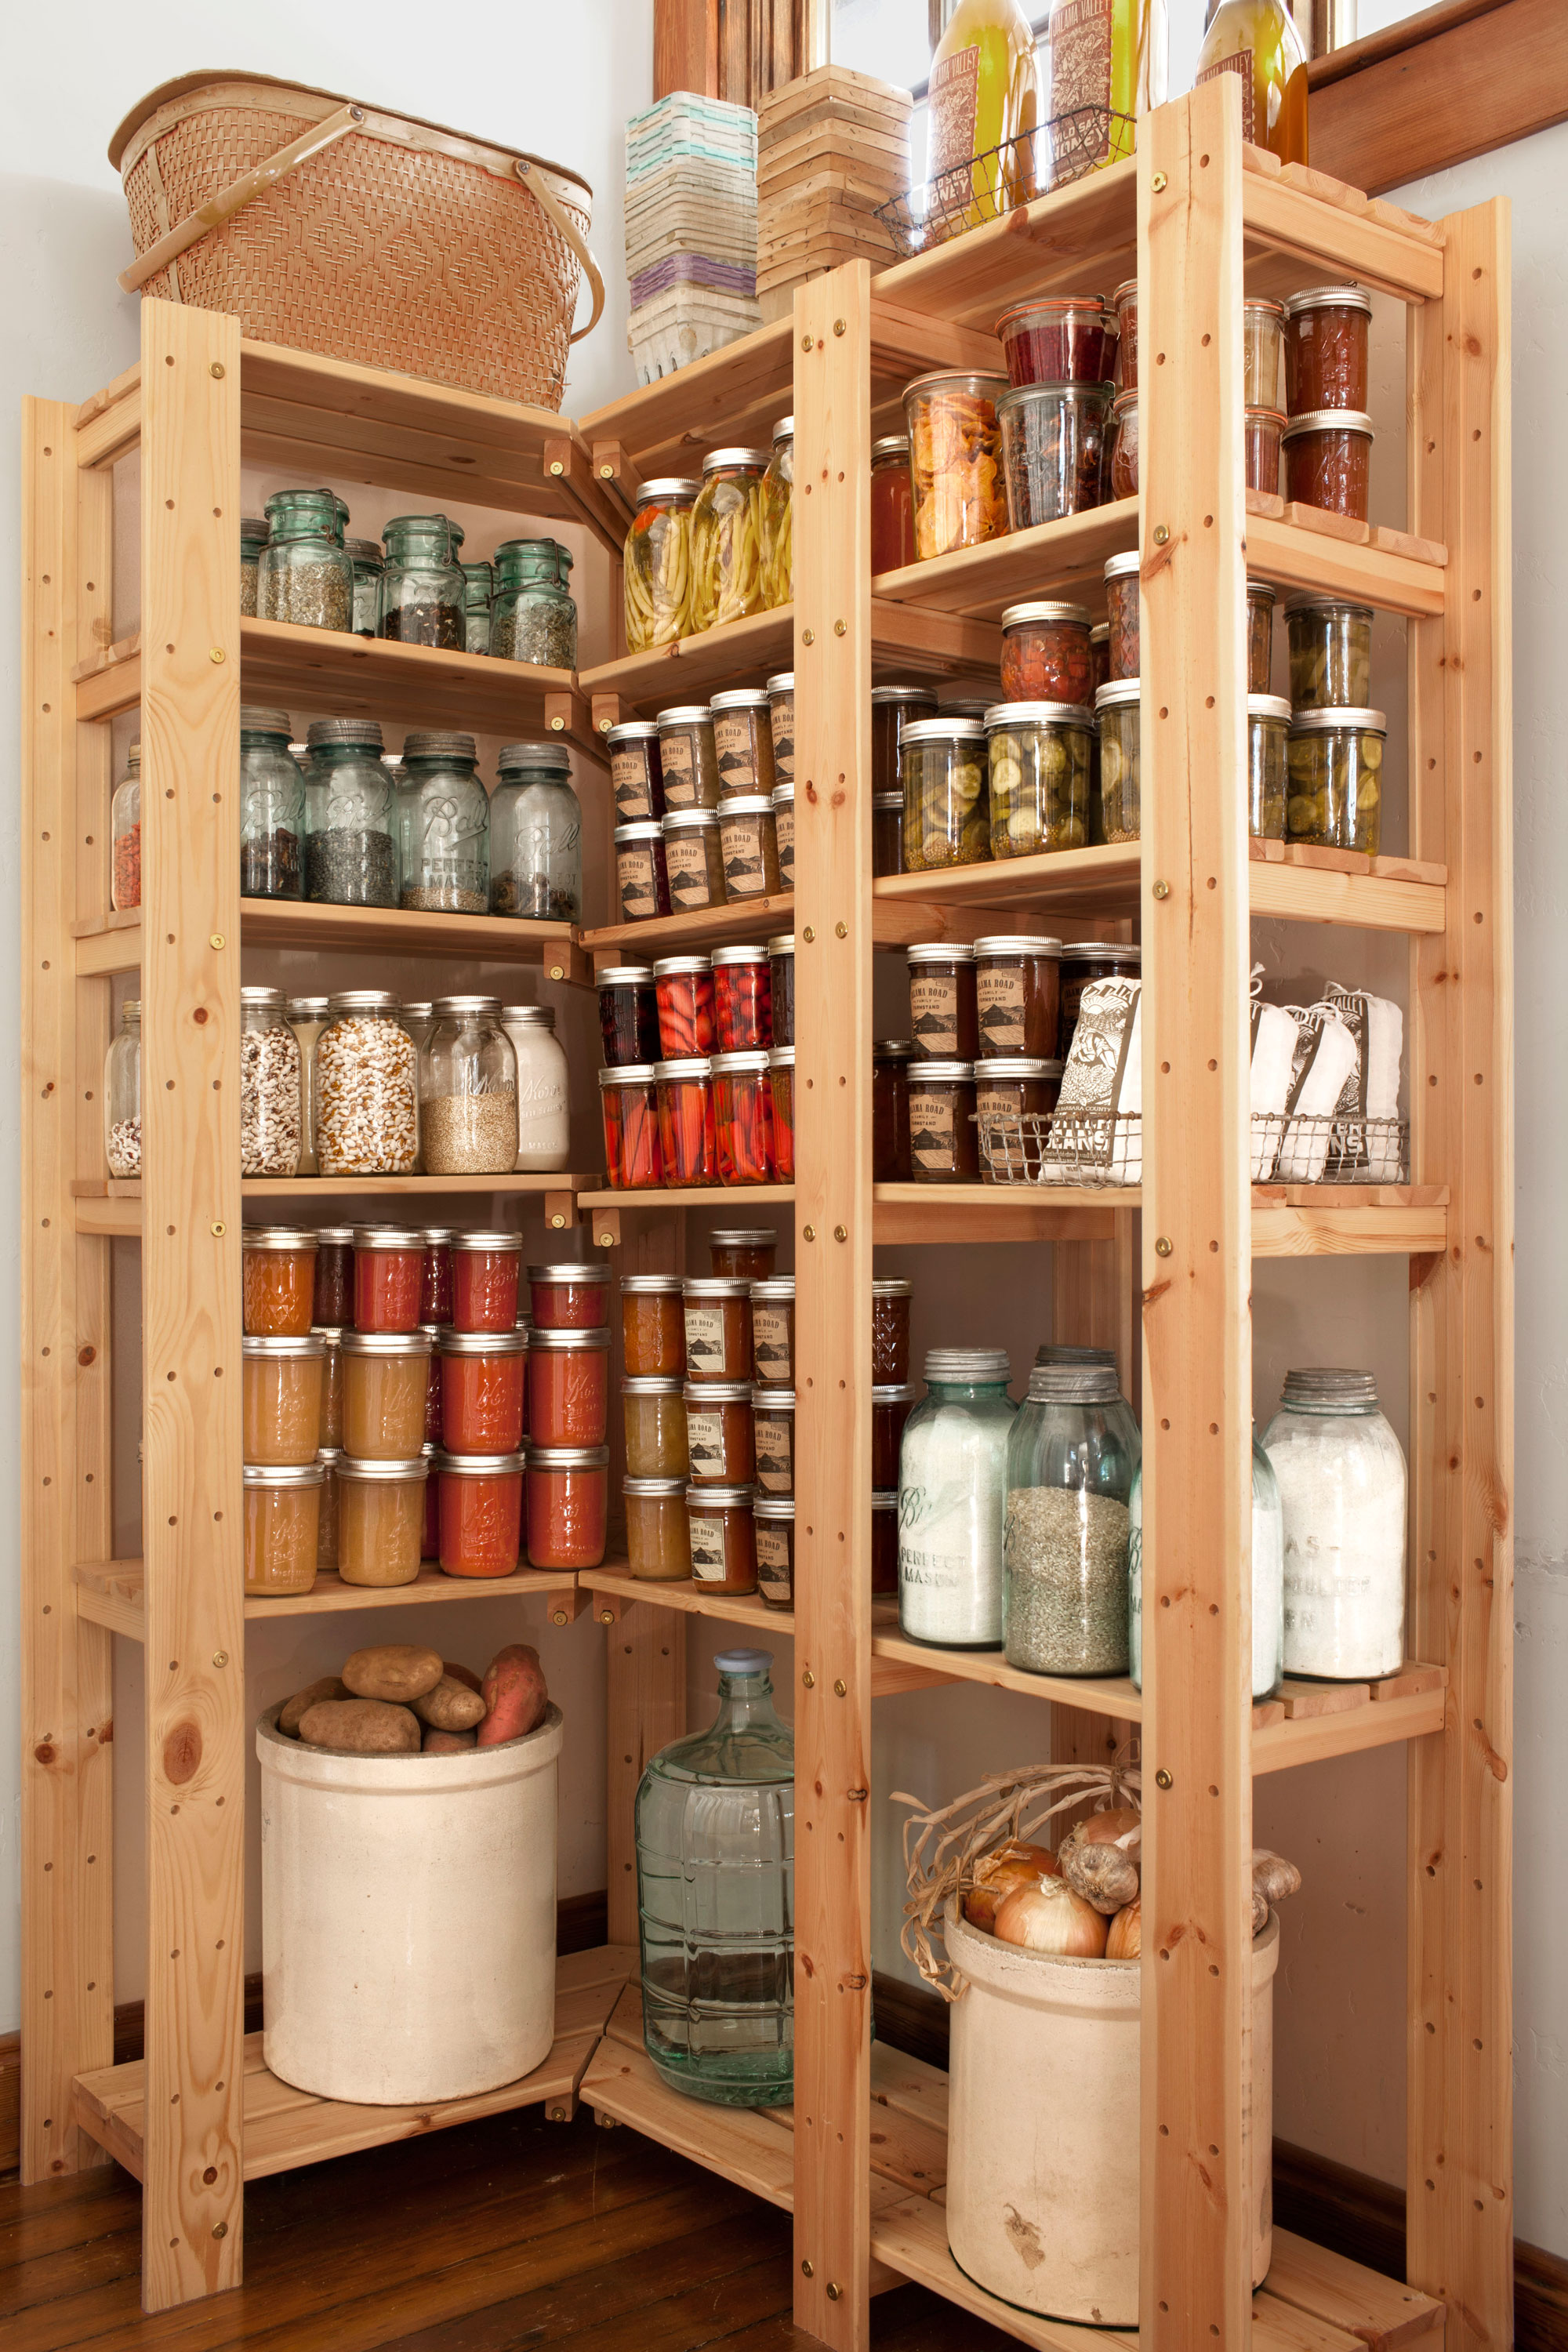 Kitchen Pantry Shelving 14 Smart Ideas For Kitchen Pantry Organization Pantry Storage Ideas